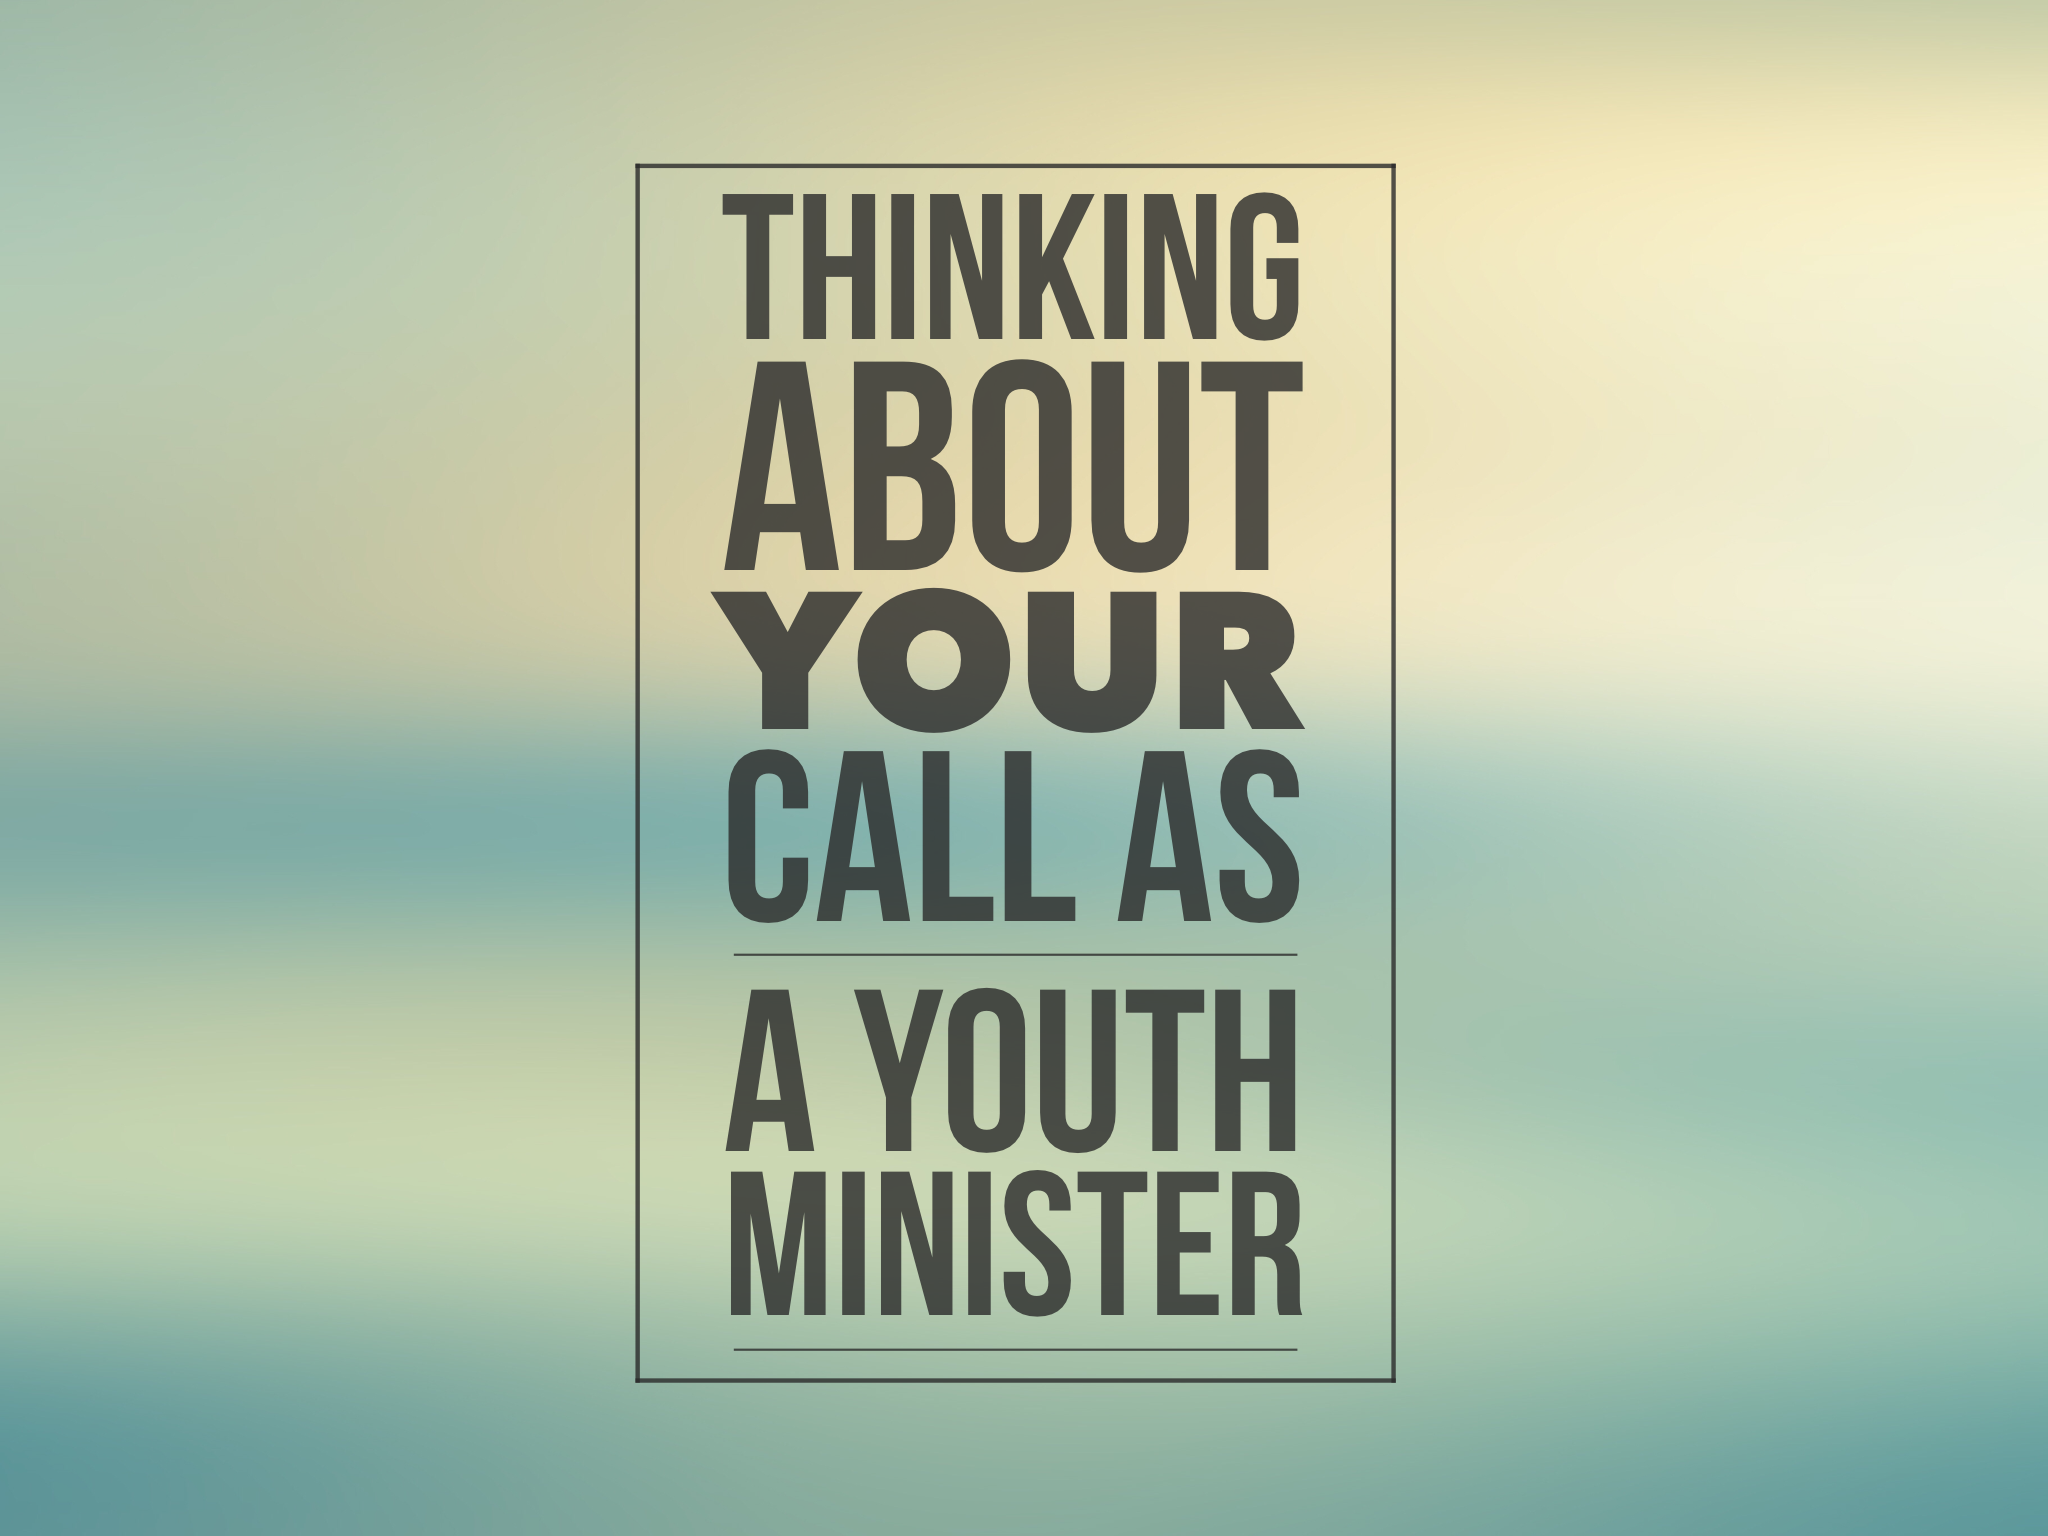 A Helpful Way To Think About Your Call As A Youth Minister